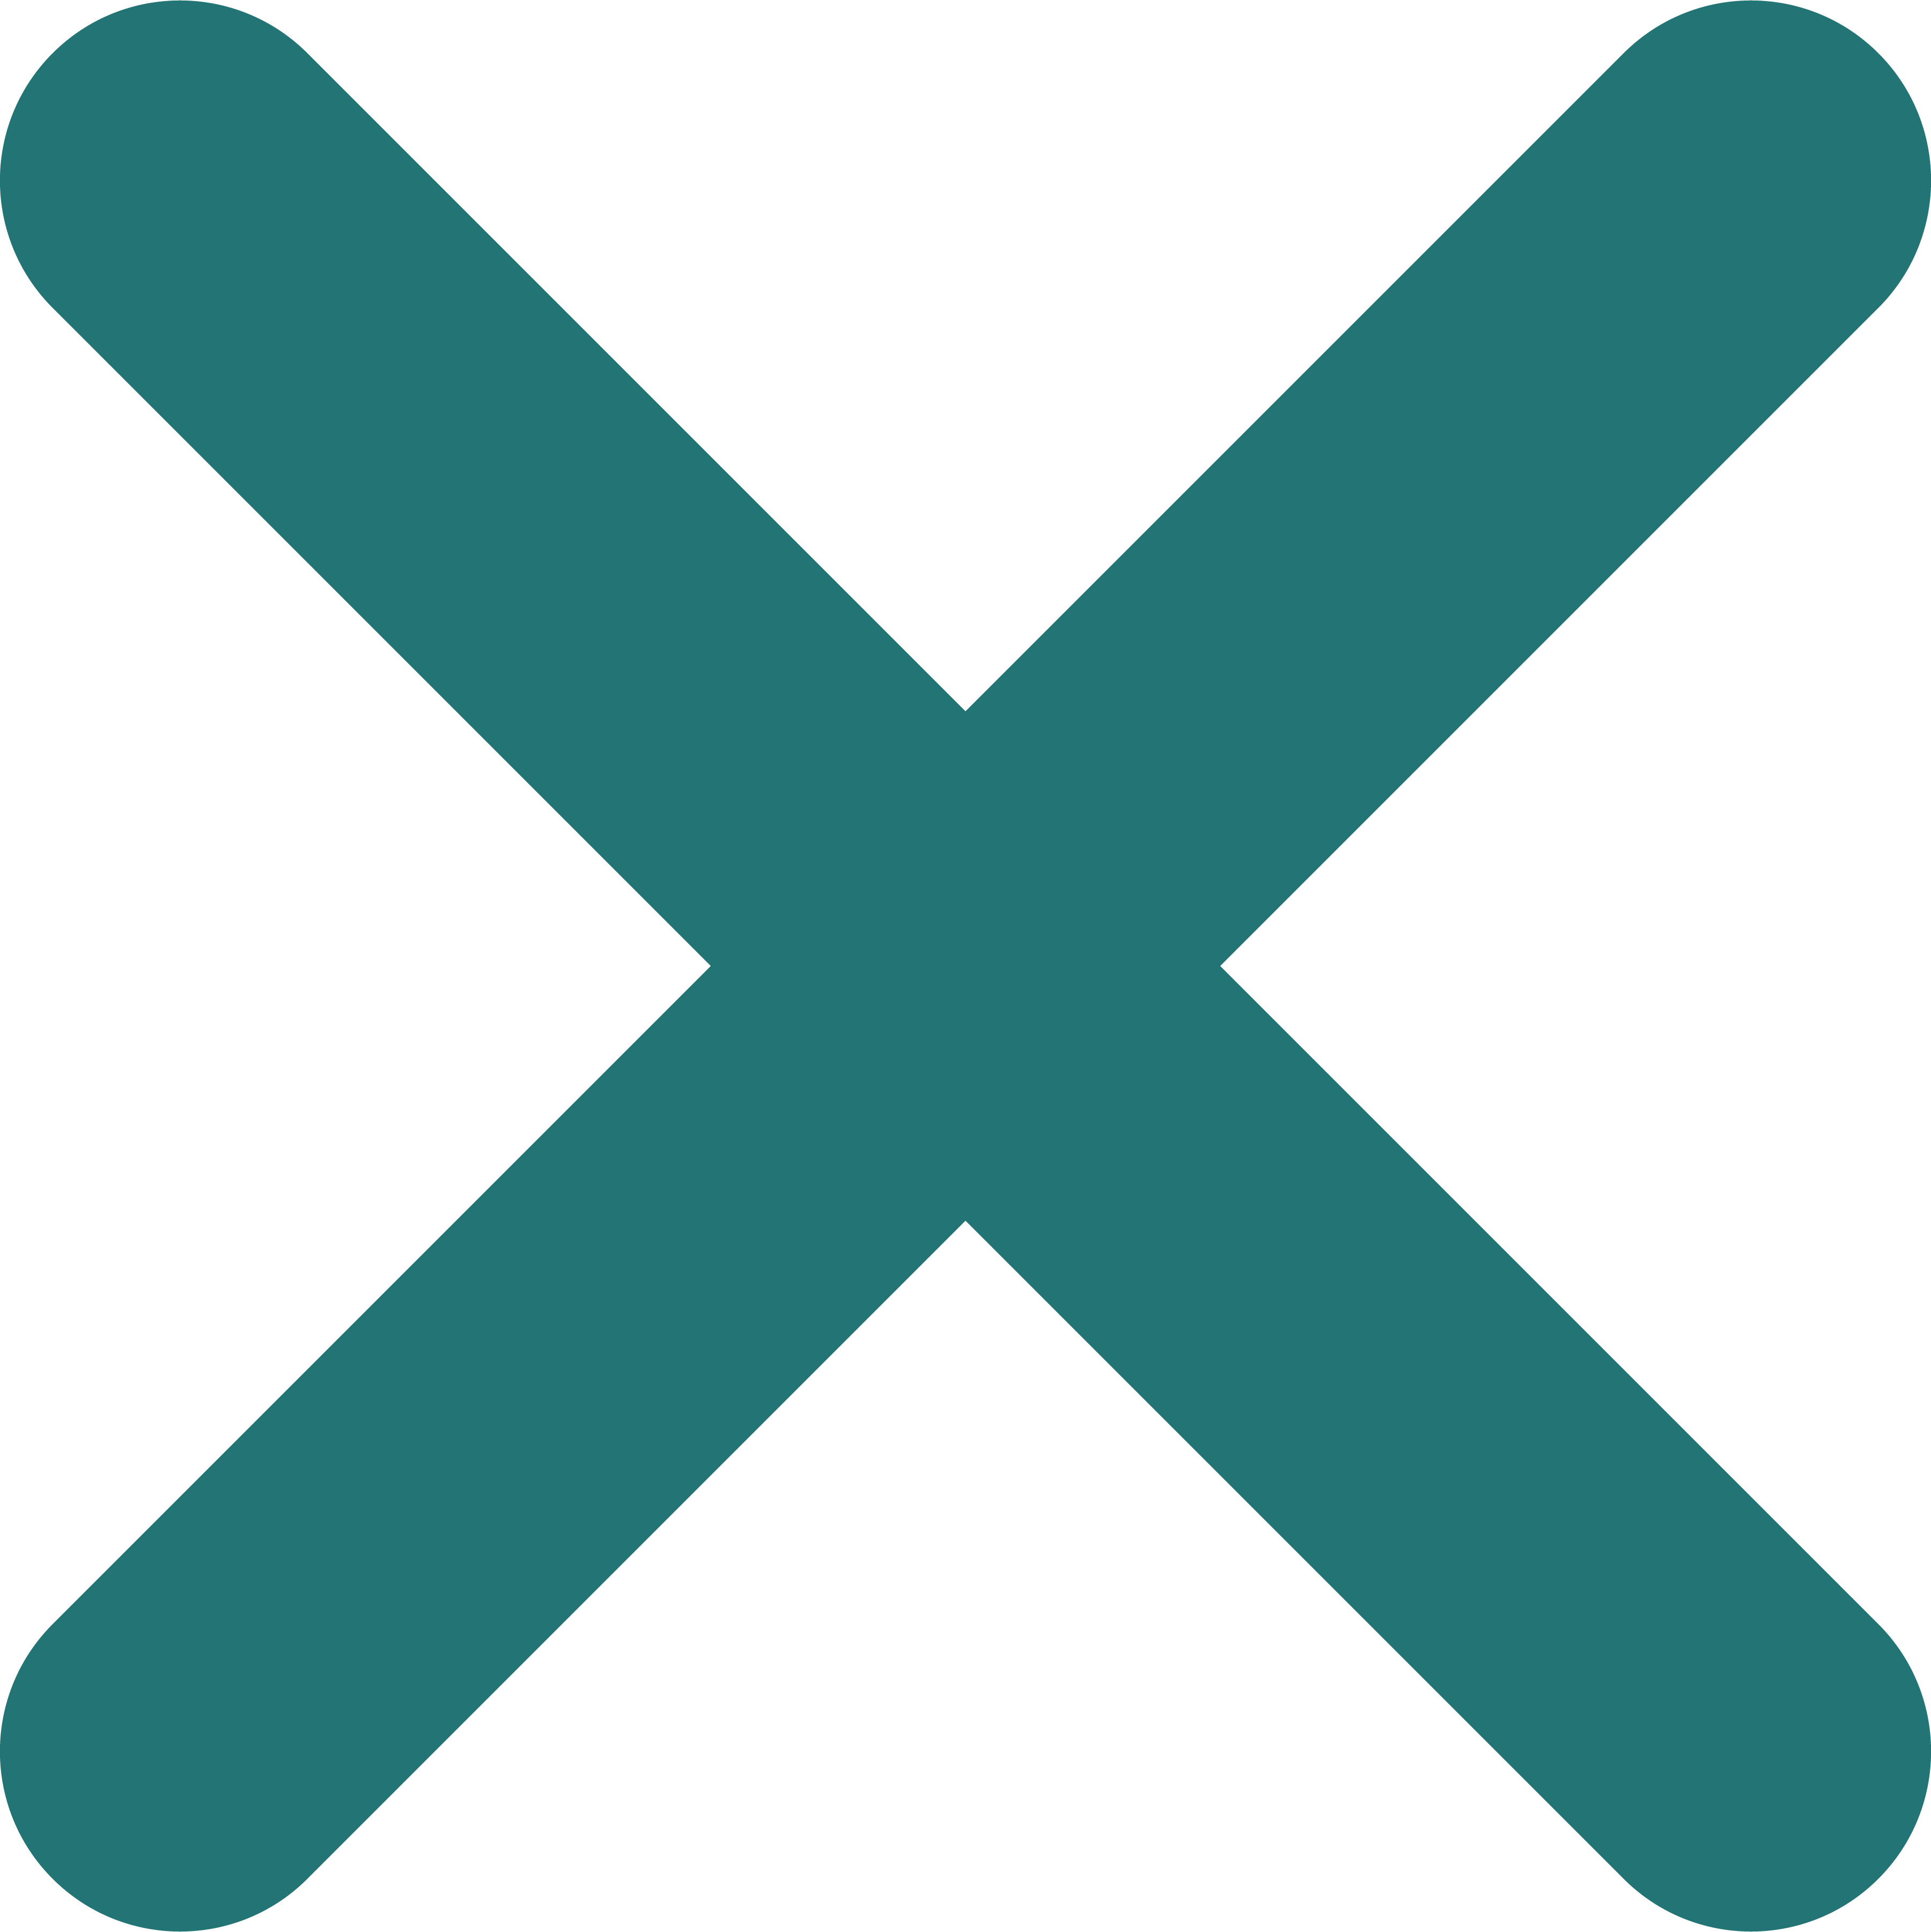 cross interface icon